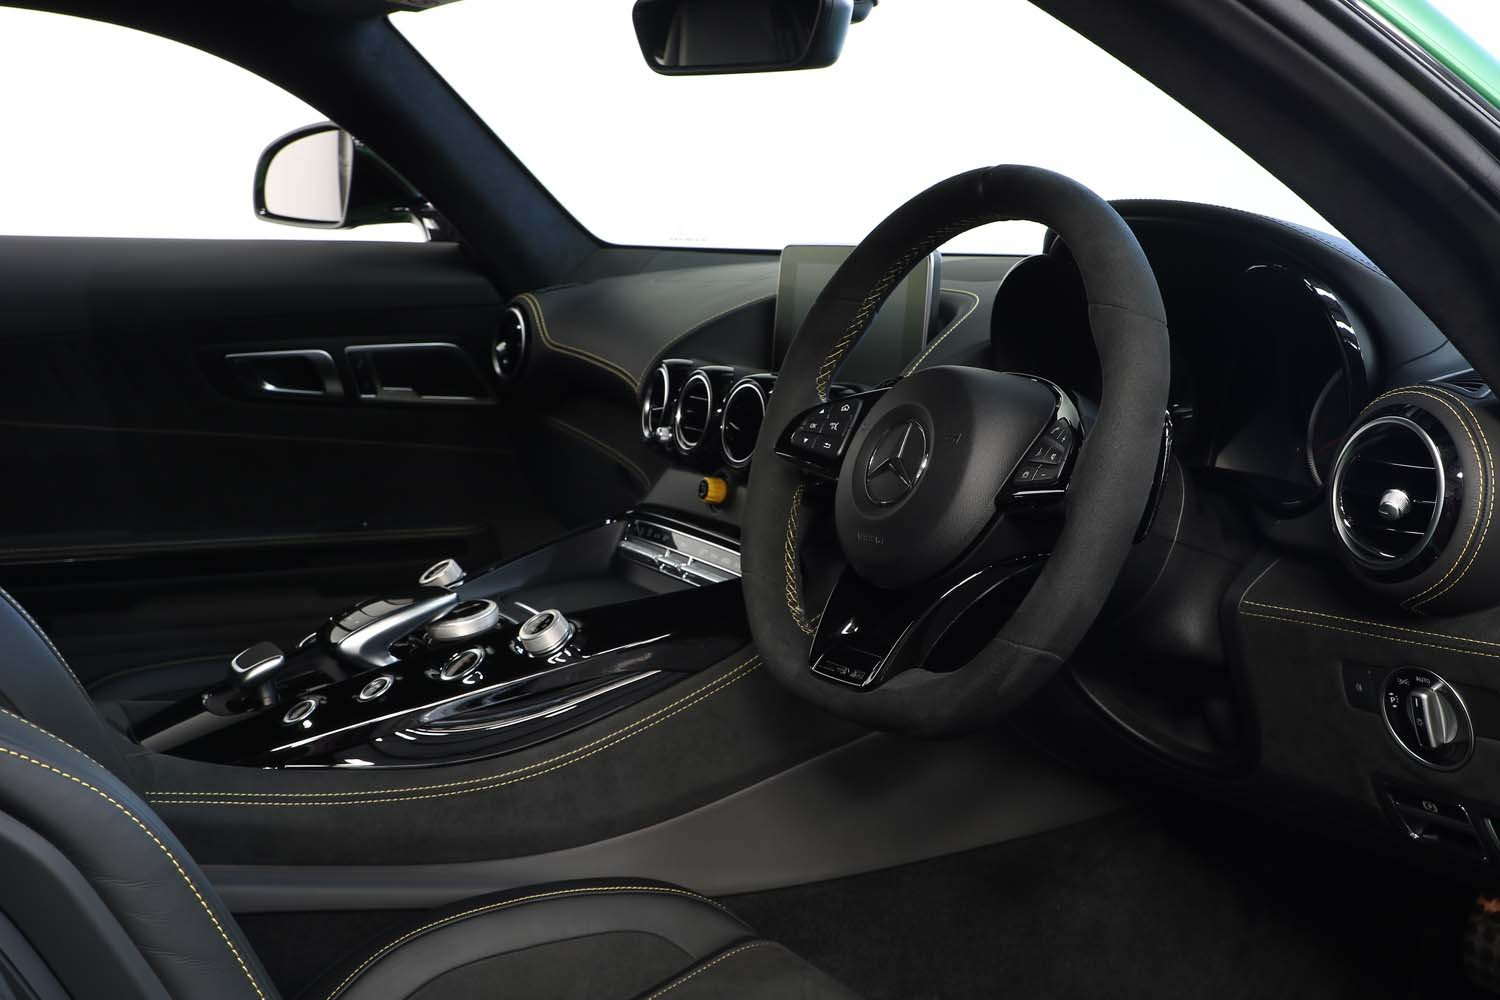 2019 19 MERCEDES BENZ AMG GT-R AUTO  For Sale (picture 4 of 6)